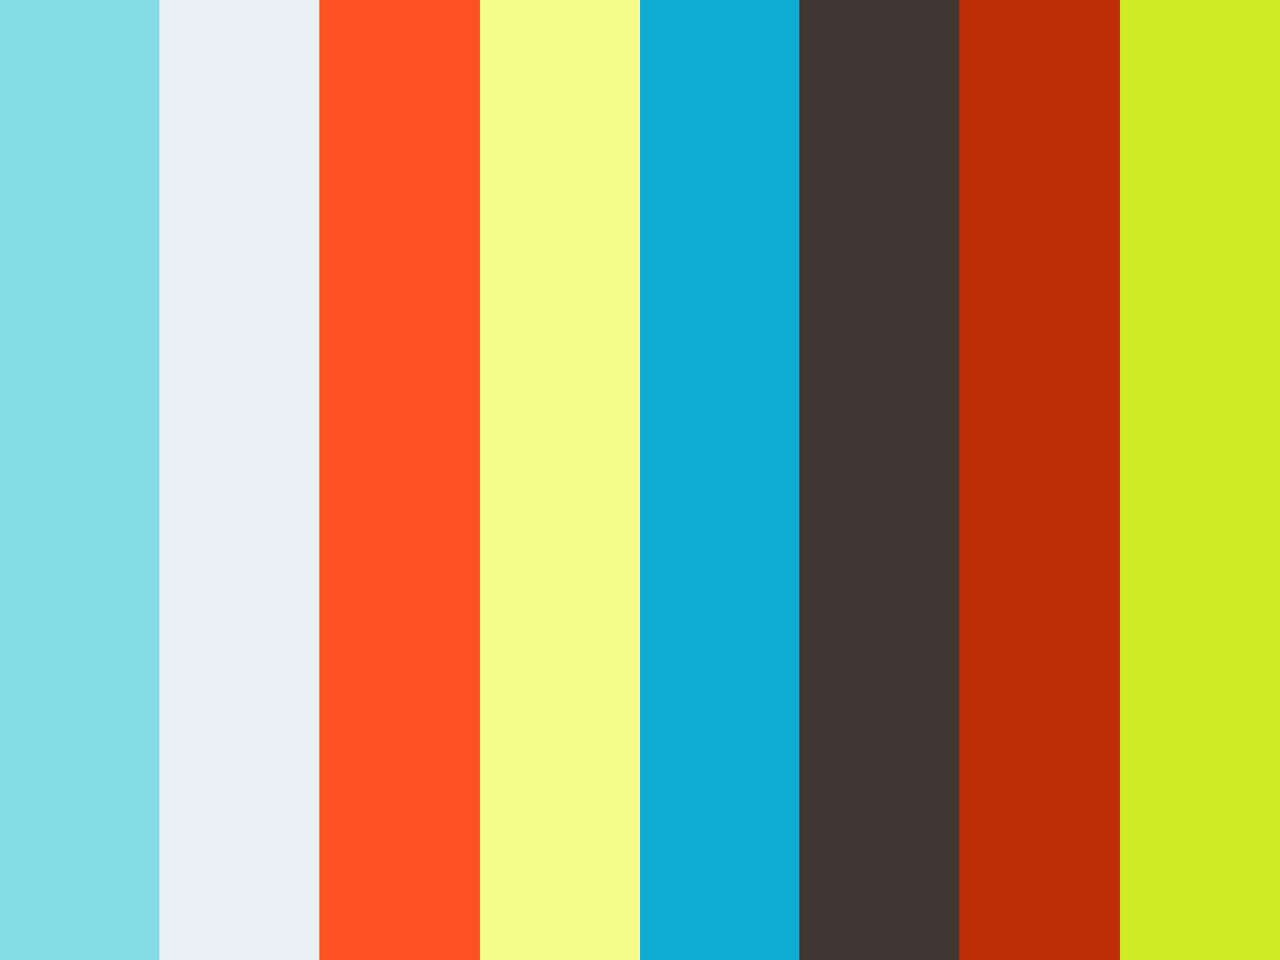 Correcting Unacceptable Behavior & Performance